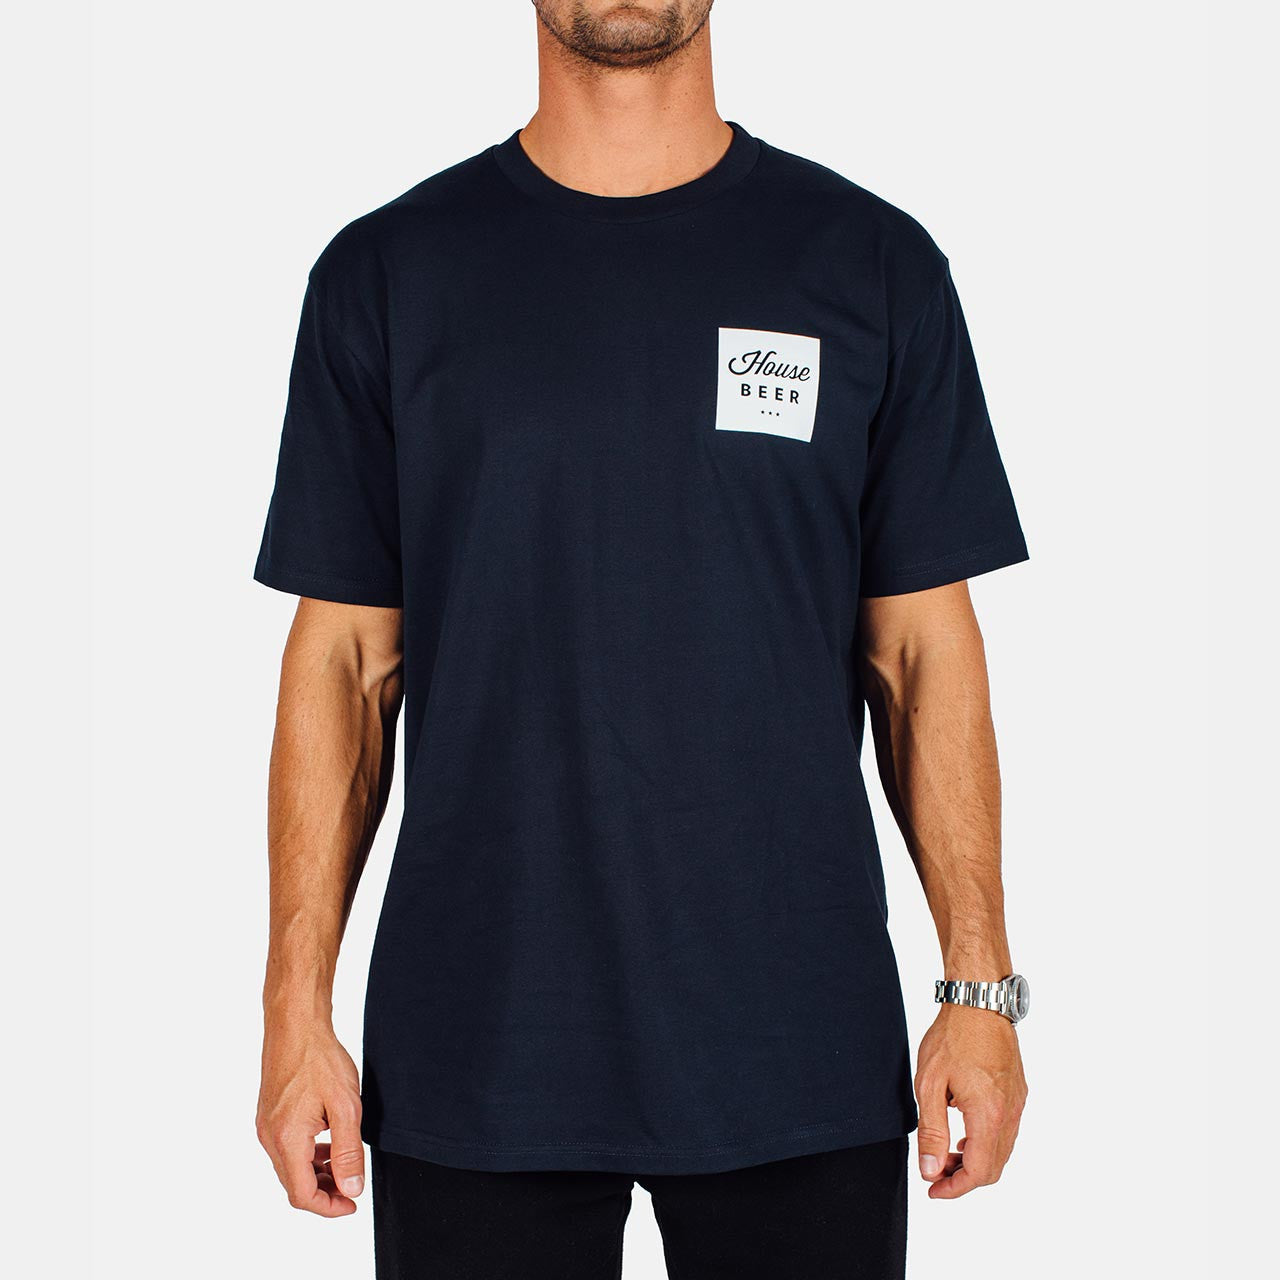 House Beer - Block Logo Tee